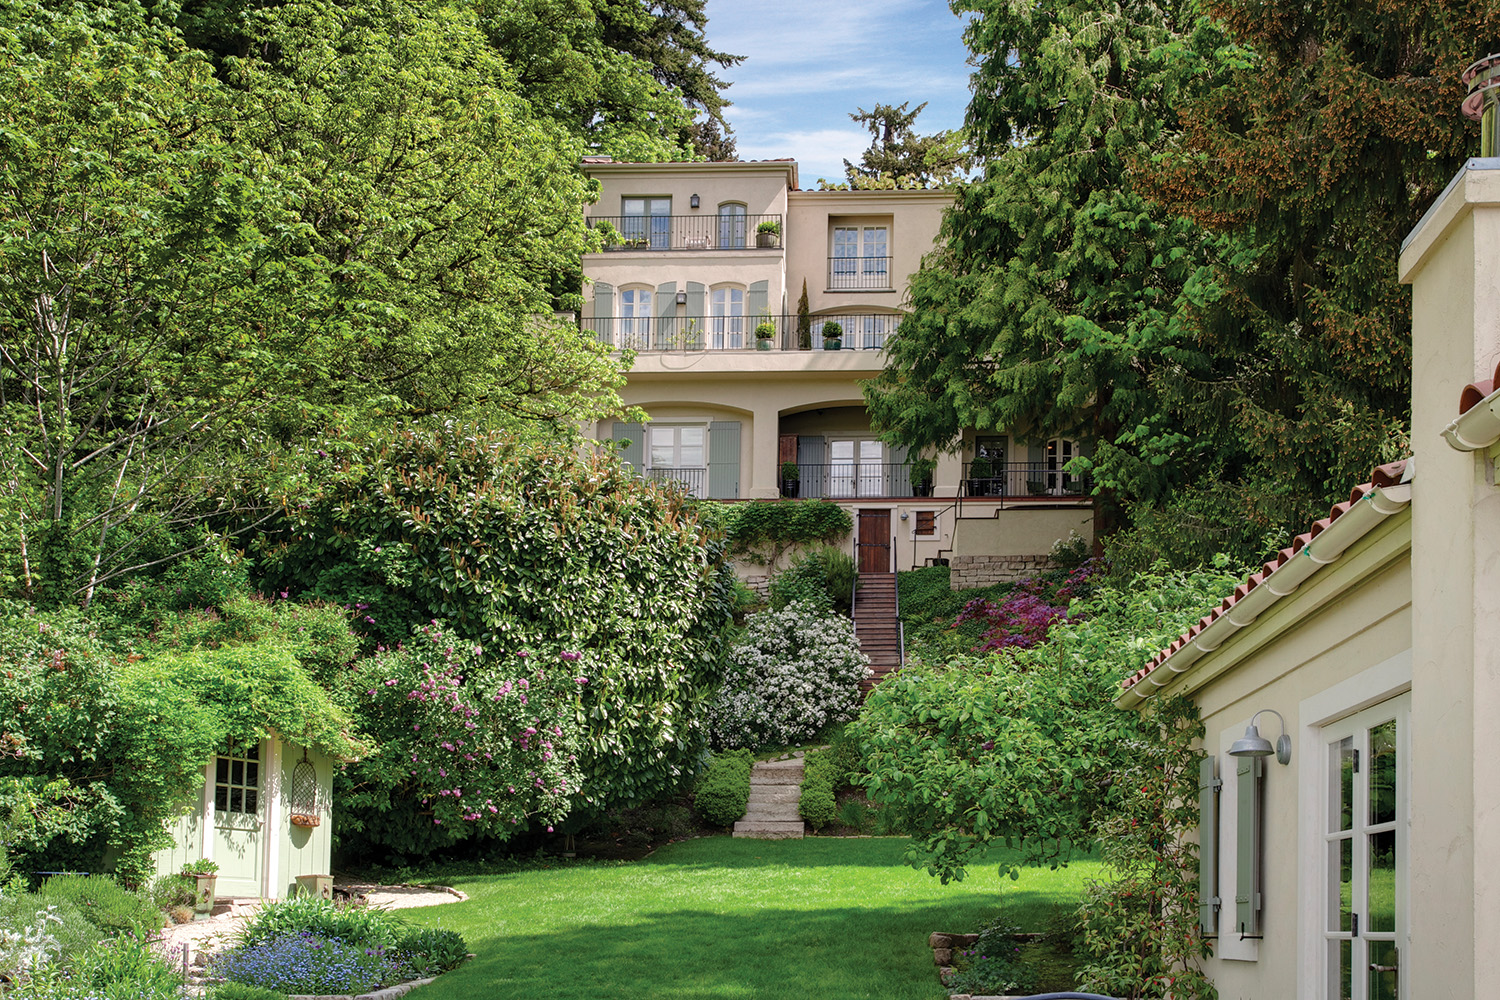 5203 82nd Ave SE, Mercer Island, listed with Jay Kipp for $6,400,000